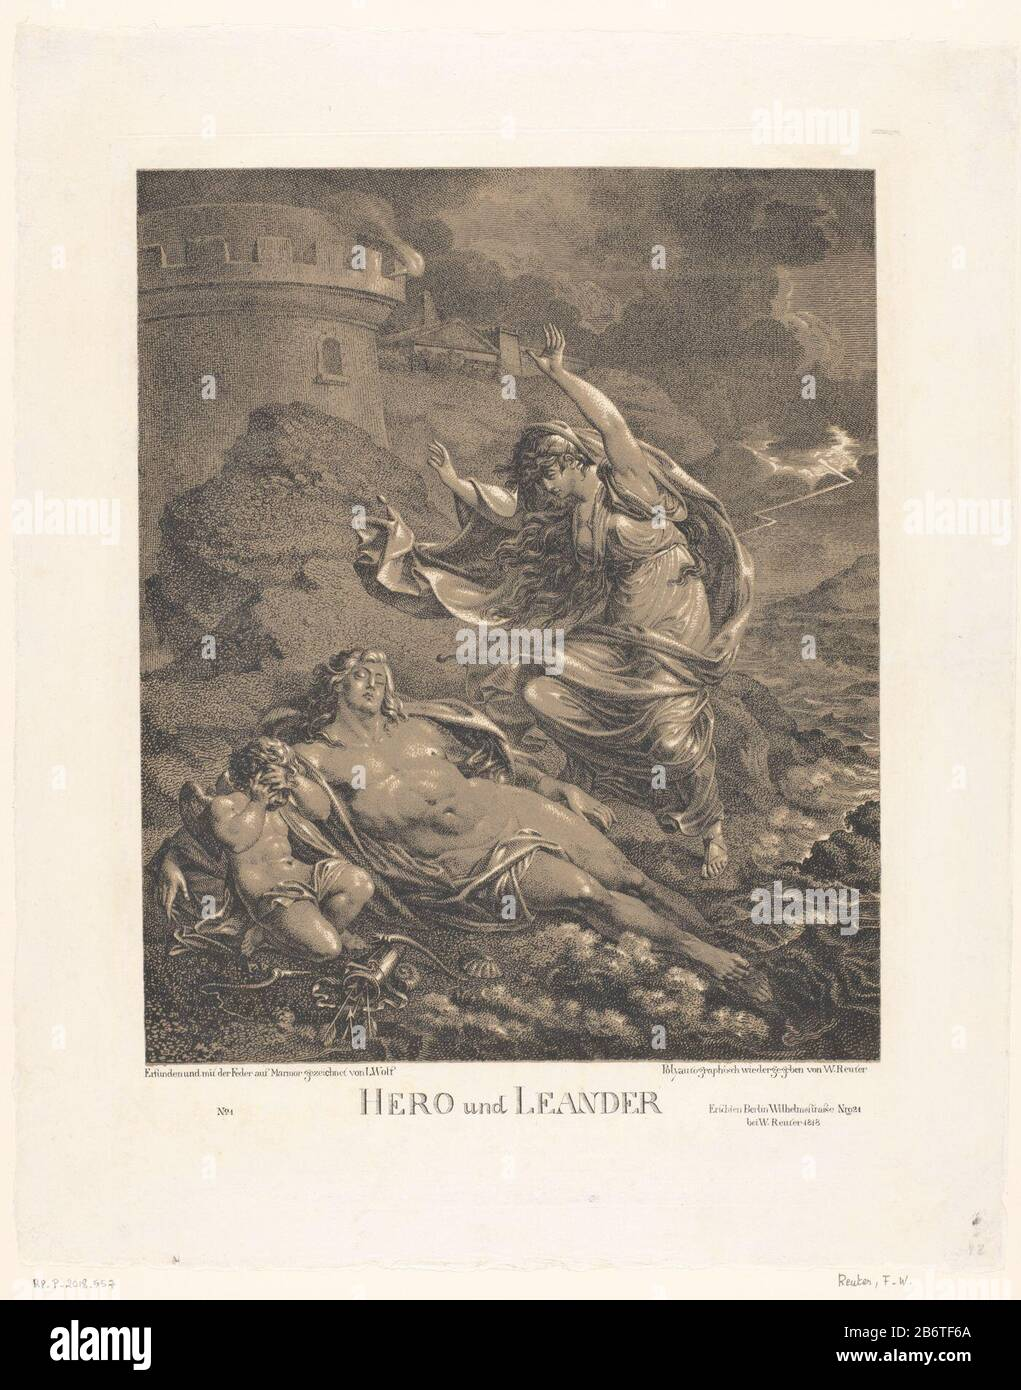 Hero en Leander Hero und Leander (titel op object) Hero finds the stranded body of Leander drowned on the coast. Left a grie Cupido. Manufacturer : printmaker: Friedrich Wilhelm Reuter (listed property) to drawing: Ludwig Wolf (listed building) Publisher: Friedrich Wilhelm Reuter (listed property) Place manufacture: Berlin Date: 1818 Physical features: tone lithograph in black and brown material: paper technique: lithography (technique) Dimensions: image: h 382 mm × W 316 mm Subject: Hero mourning the dead Leander on the sea-shore Stock Photo